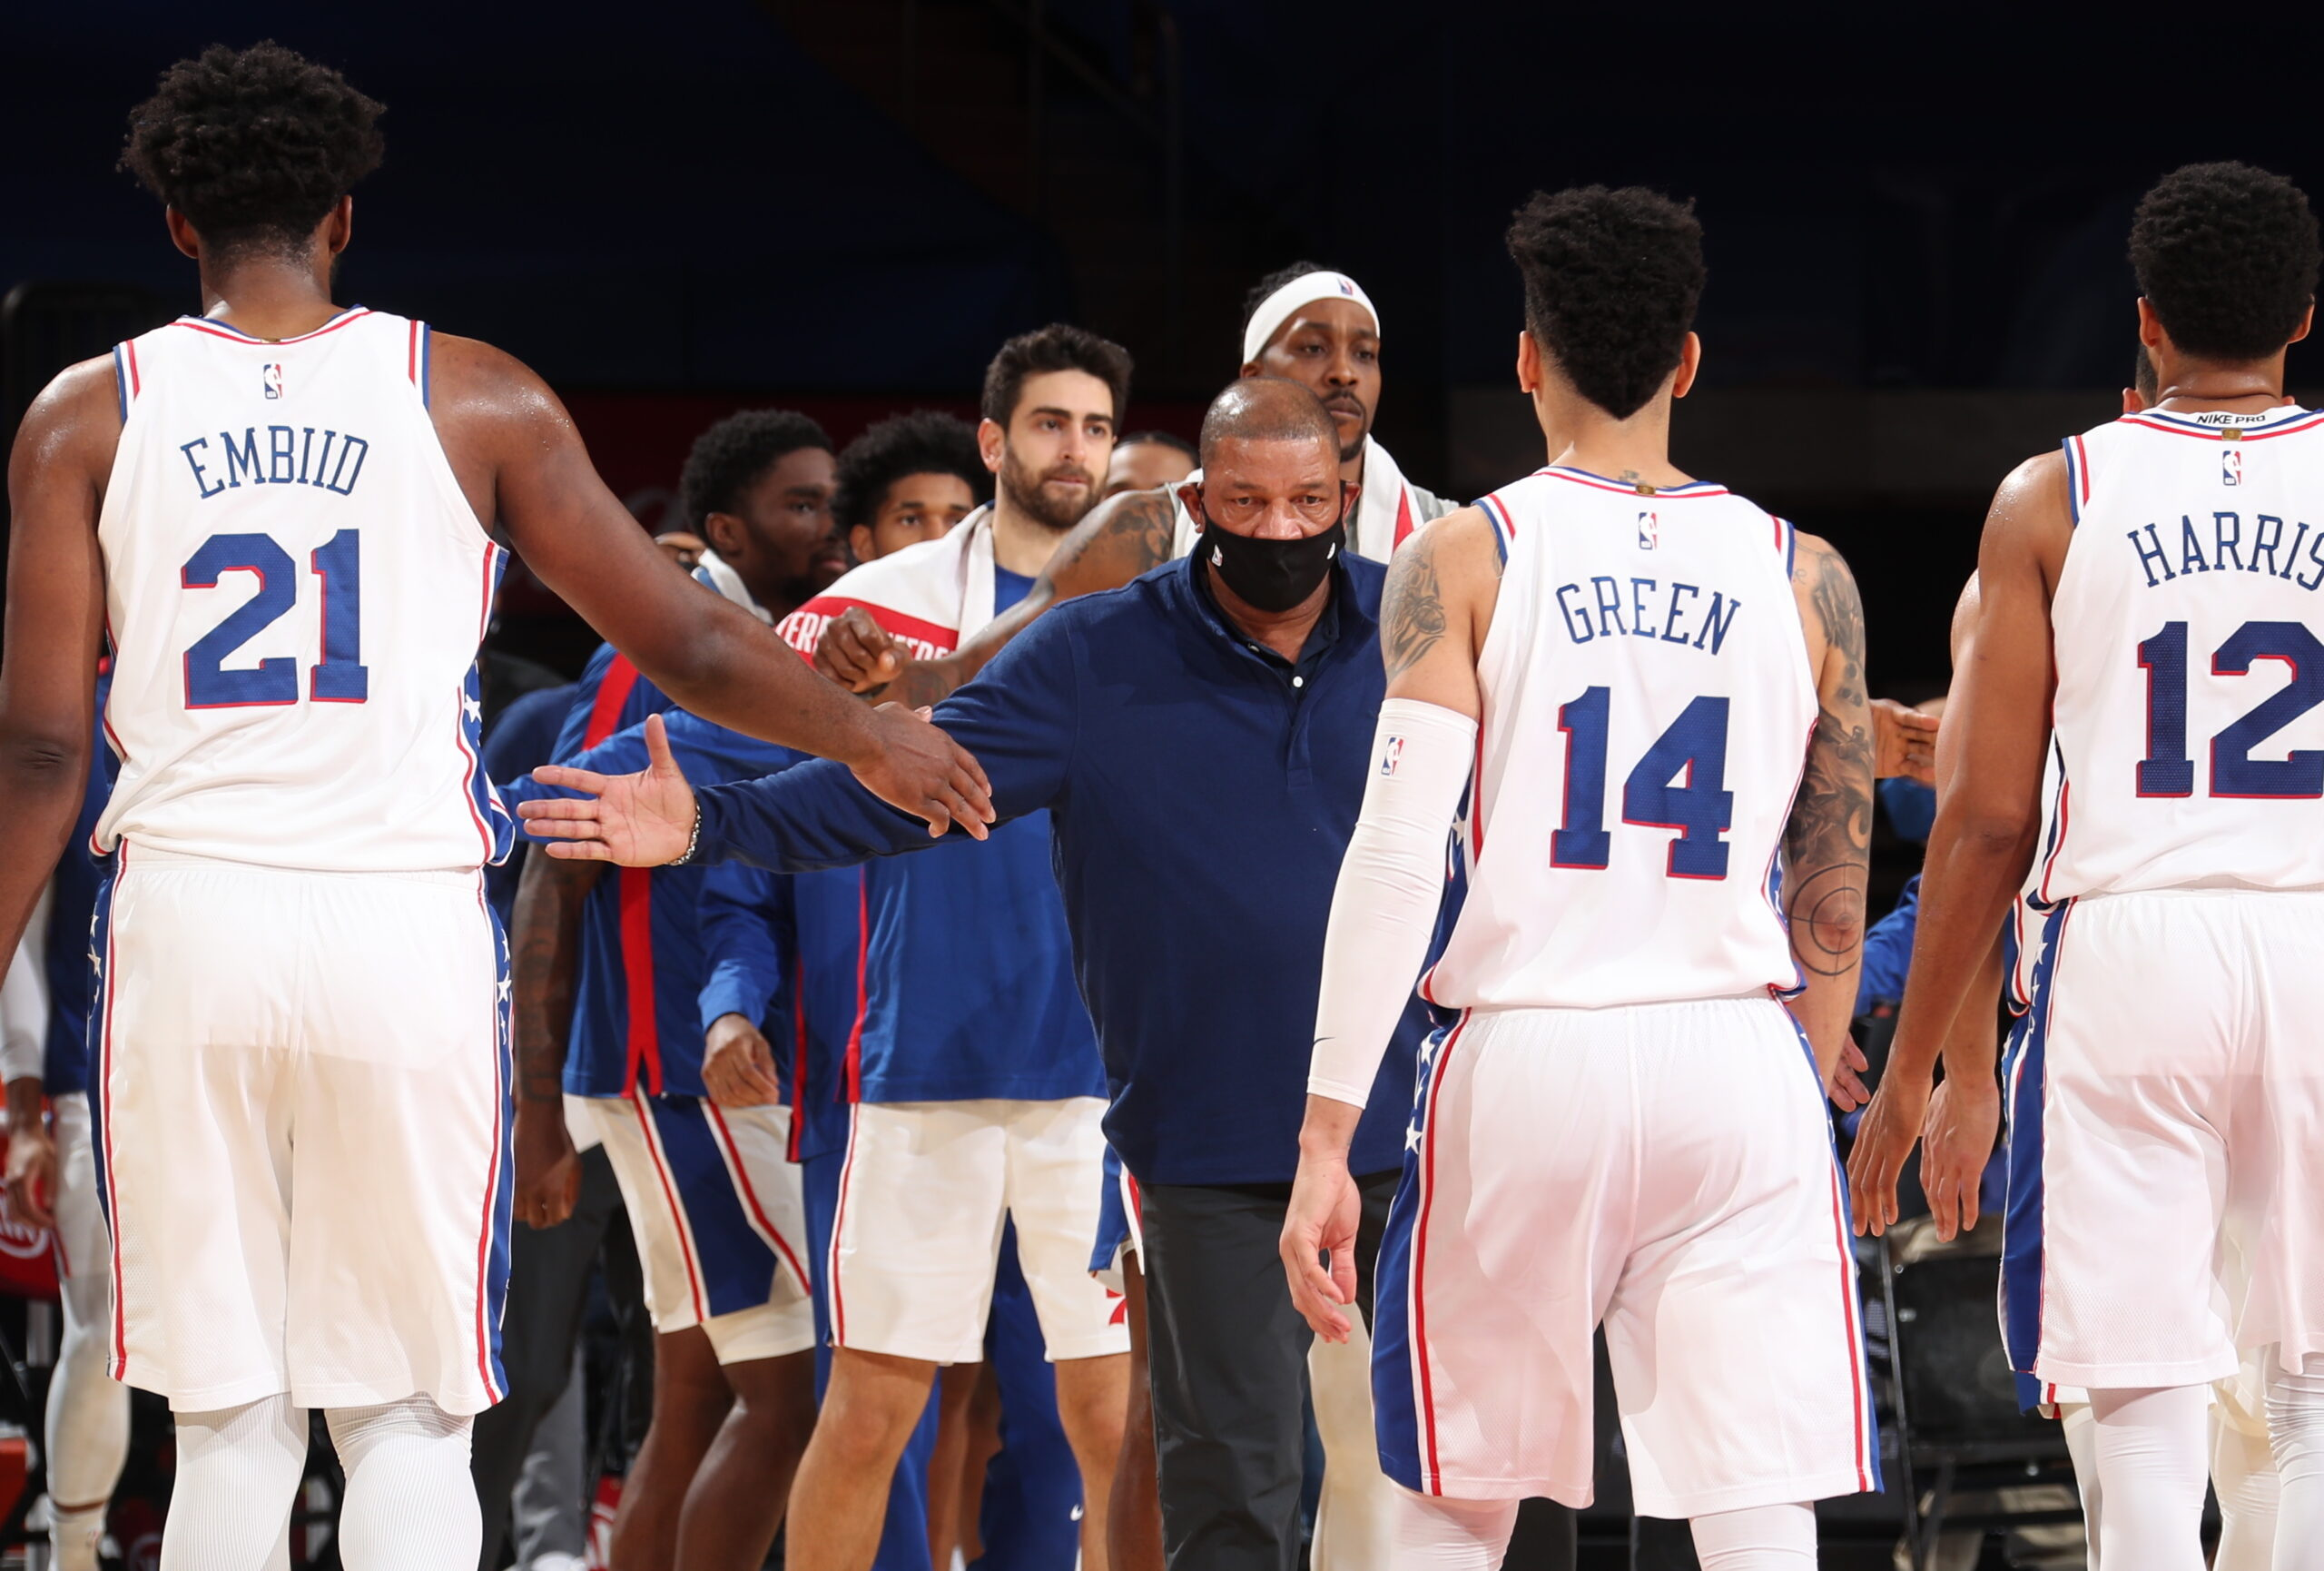 Doc Rivers climbs to 10th in career coaching wins